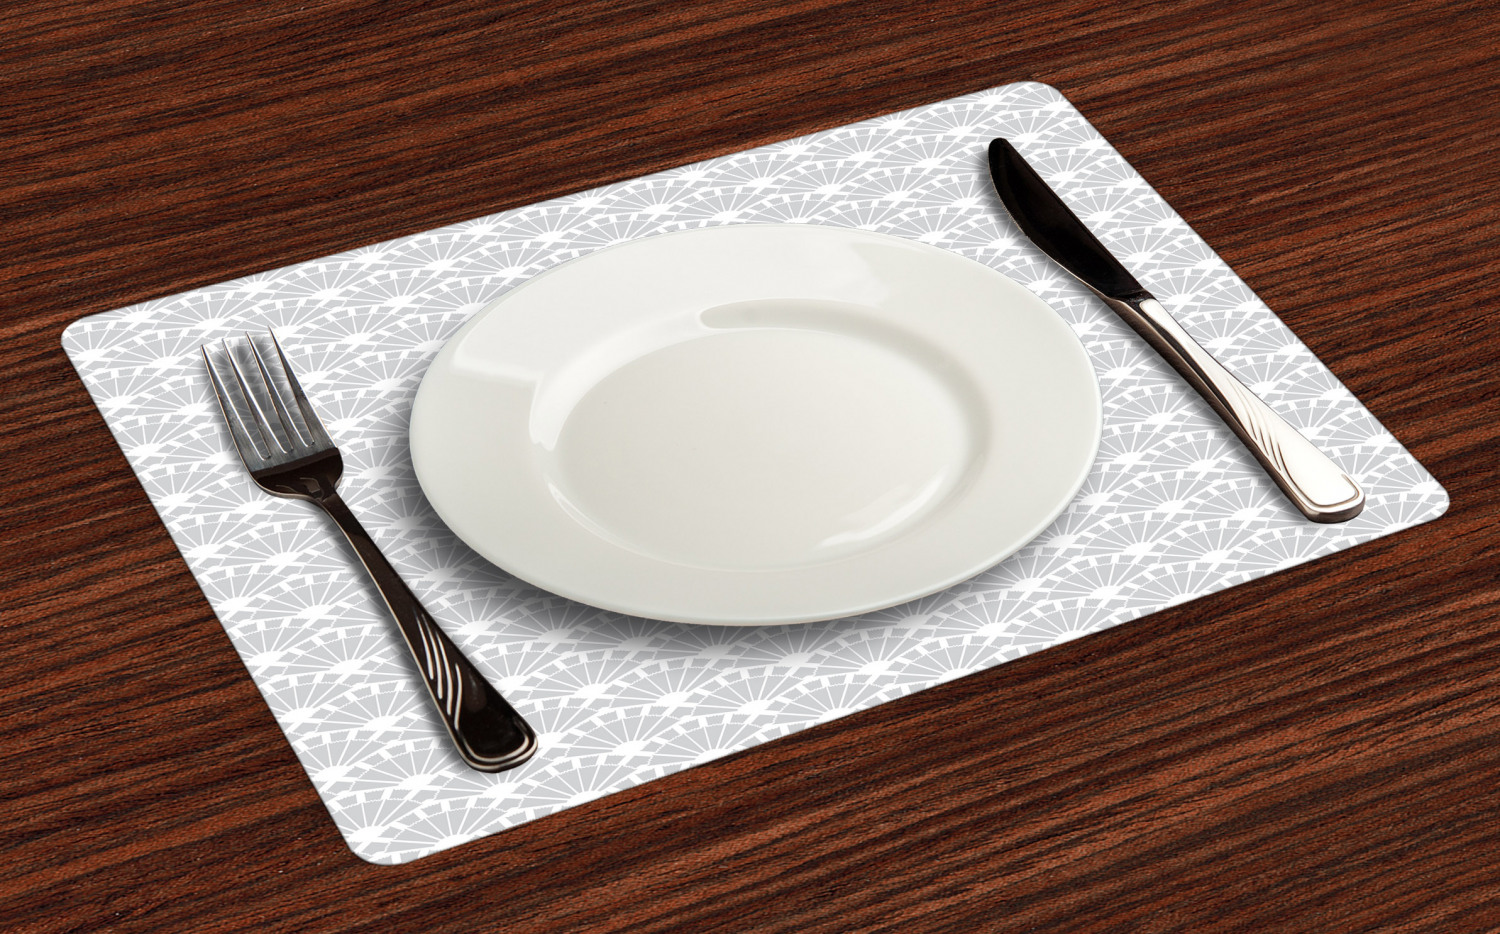 Ambesonne-Fabric-Place-Mats-Set-of-4-Placemats-for-Dining-Room-and-Kitchen-Table thumbnail 5